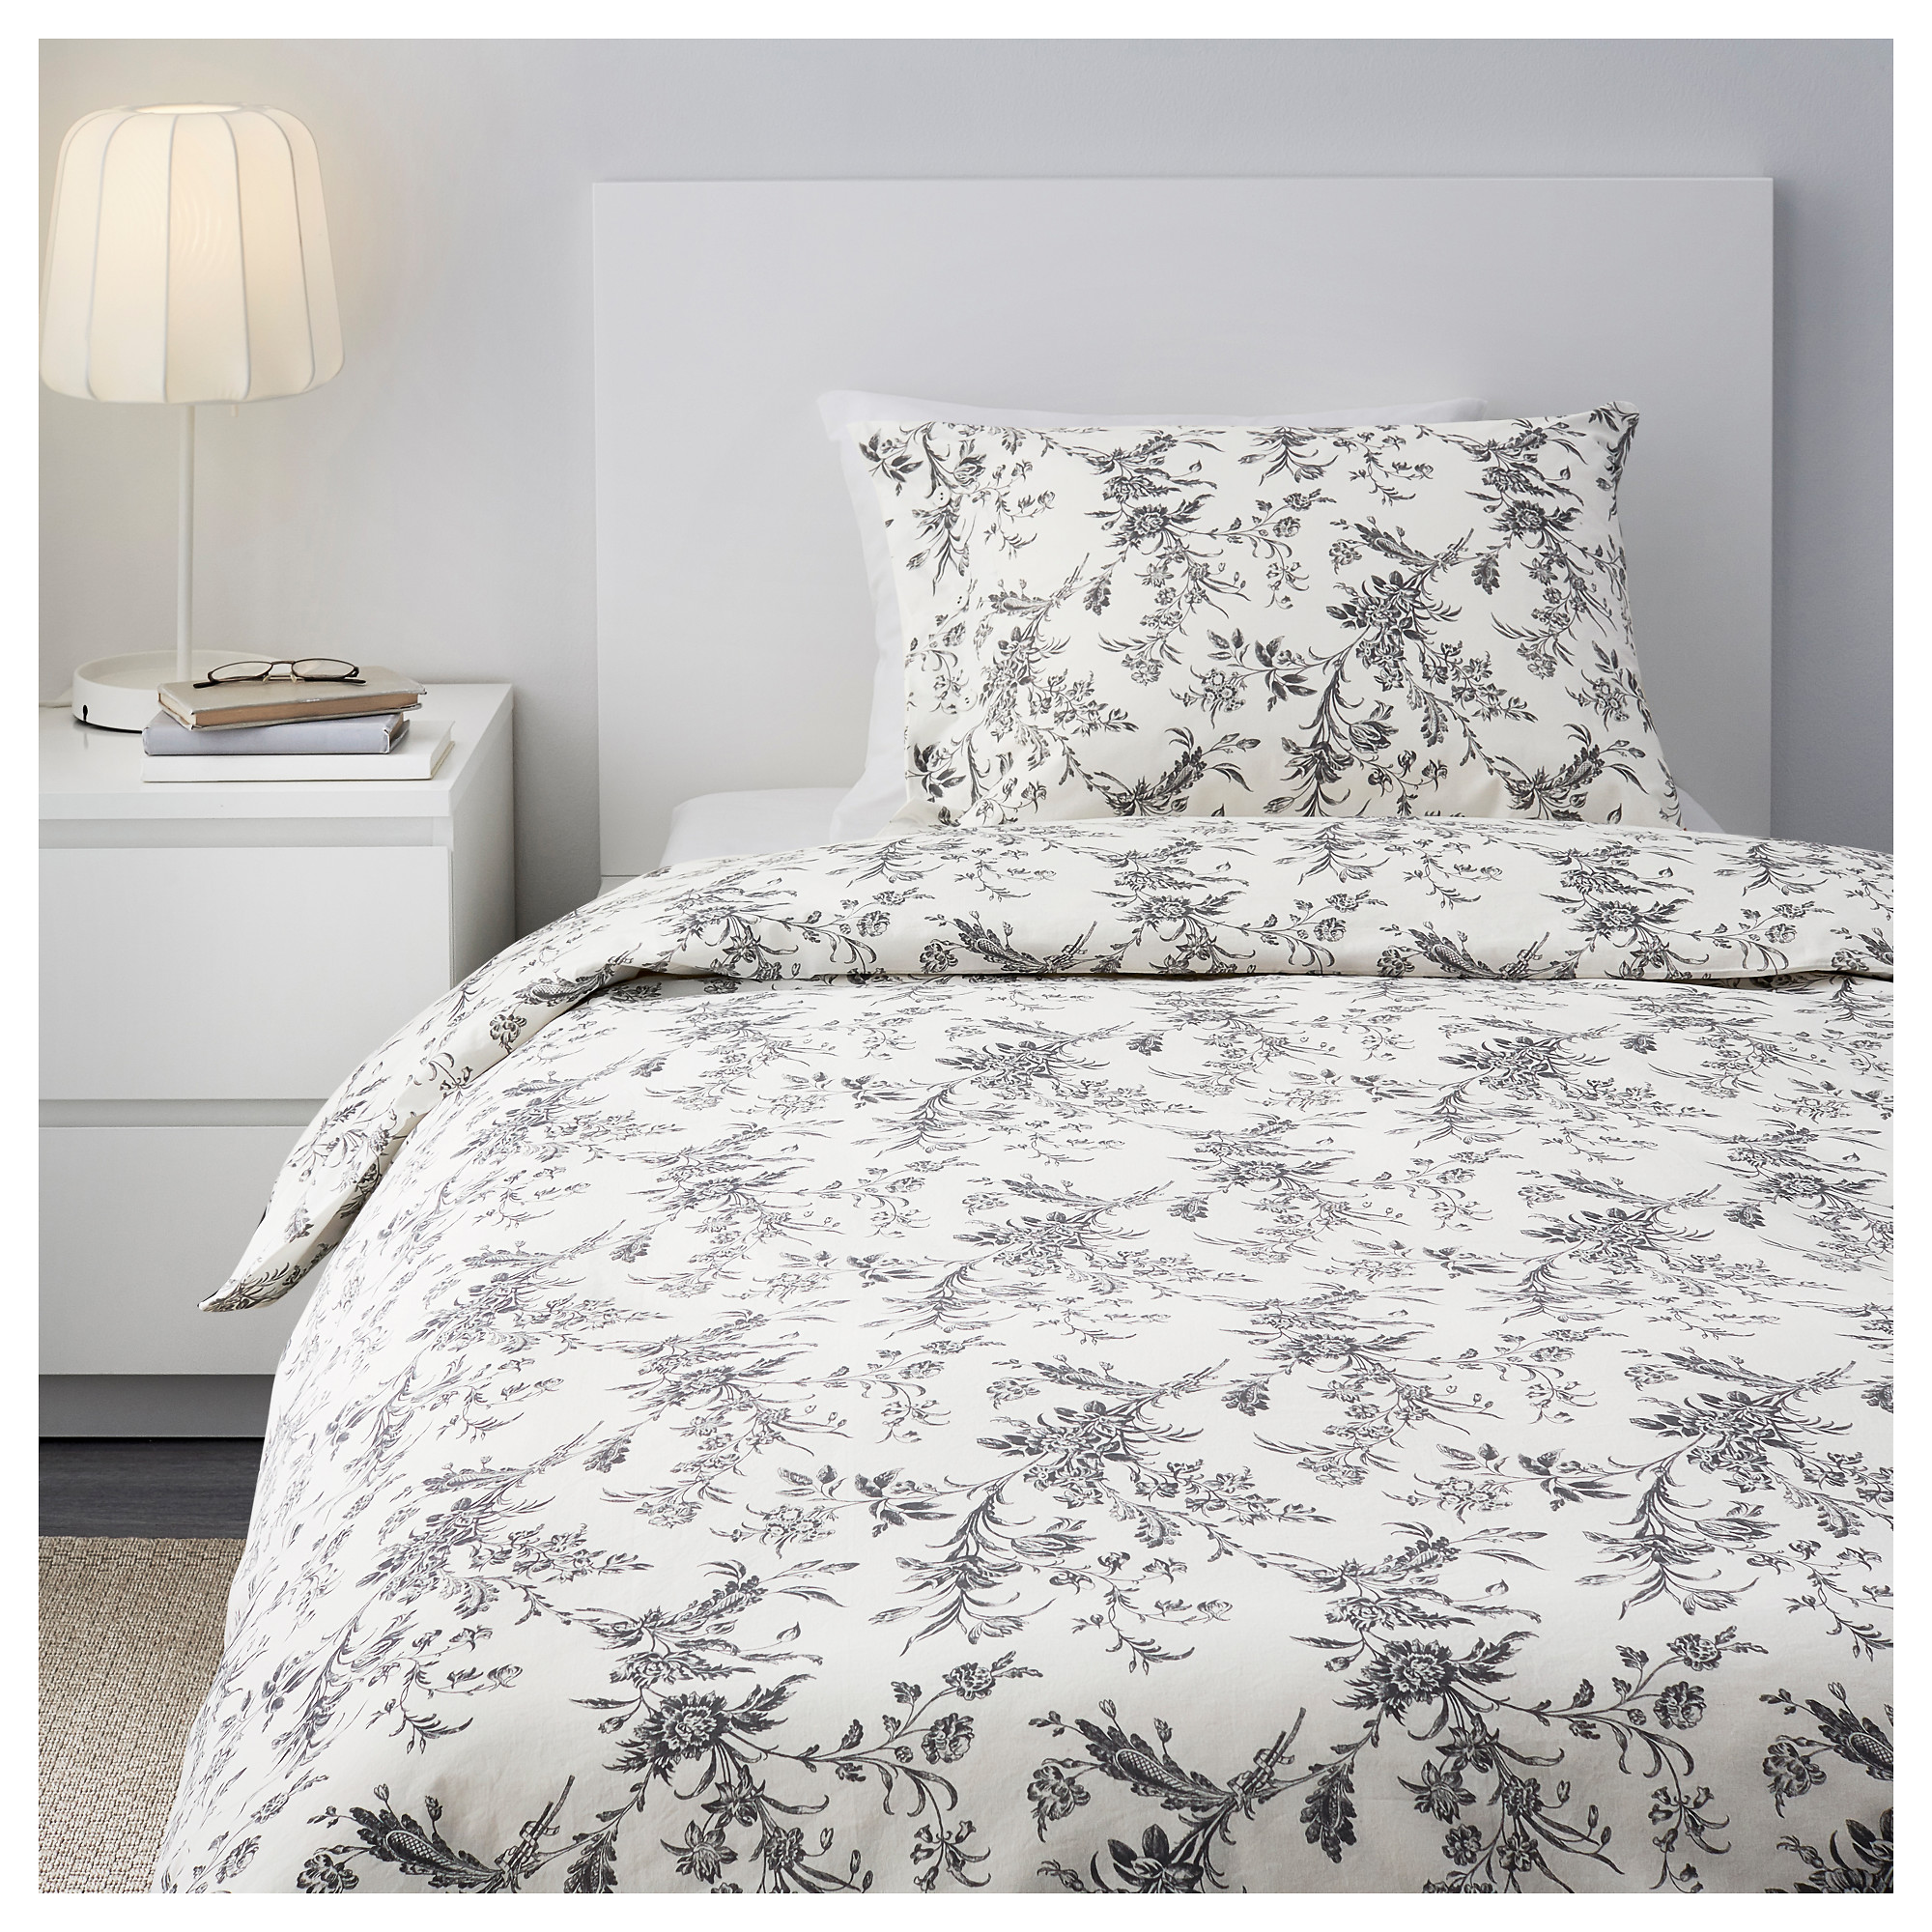 ALVINE KVIST Duvet cover and pillowcase s Twin IKEA